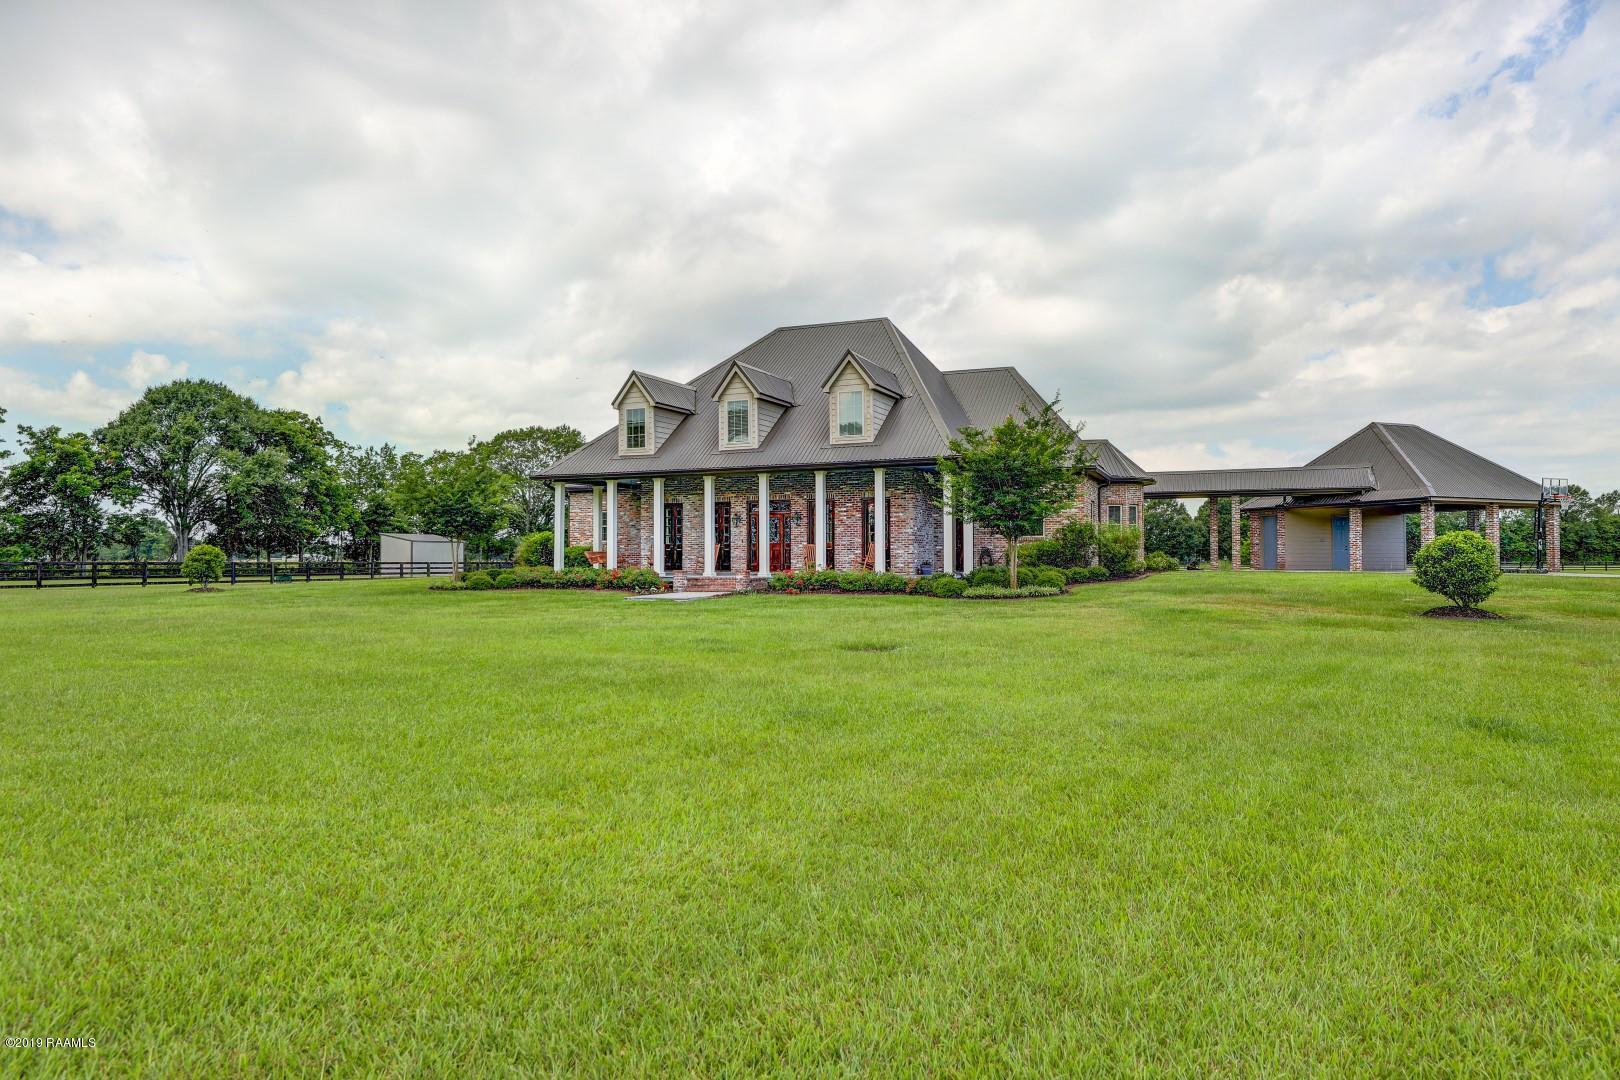 221 Braquet Road, Carencro, LA 70520 Photo #13